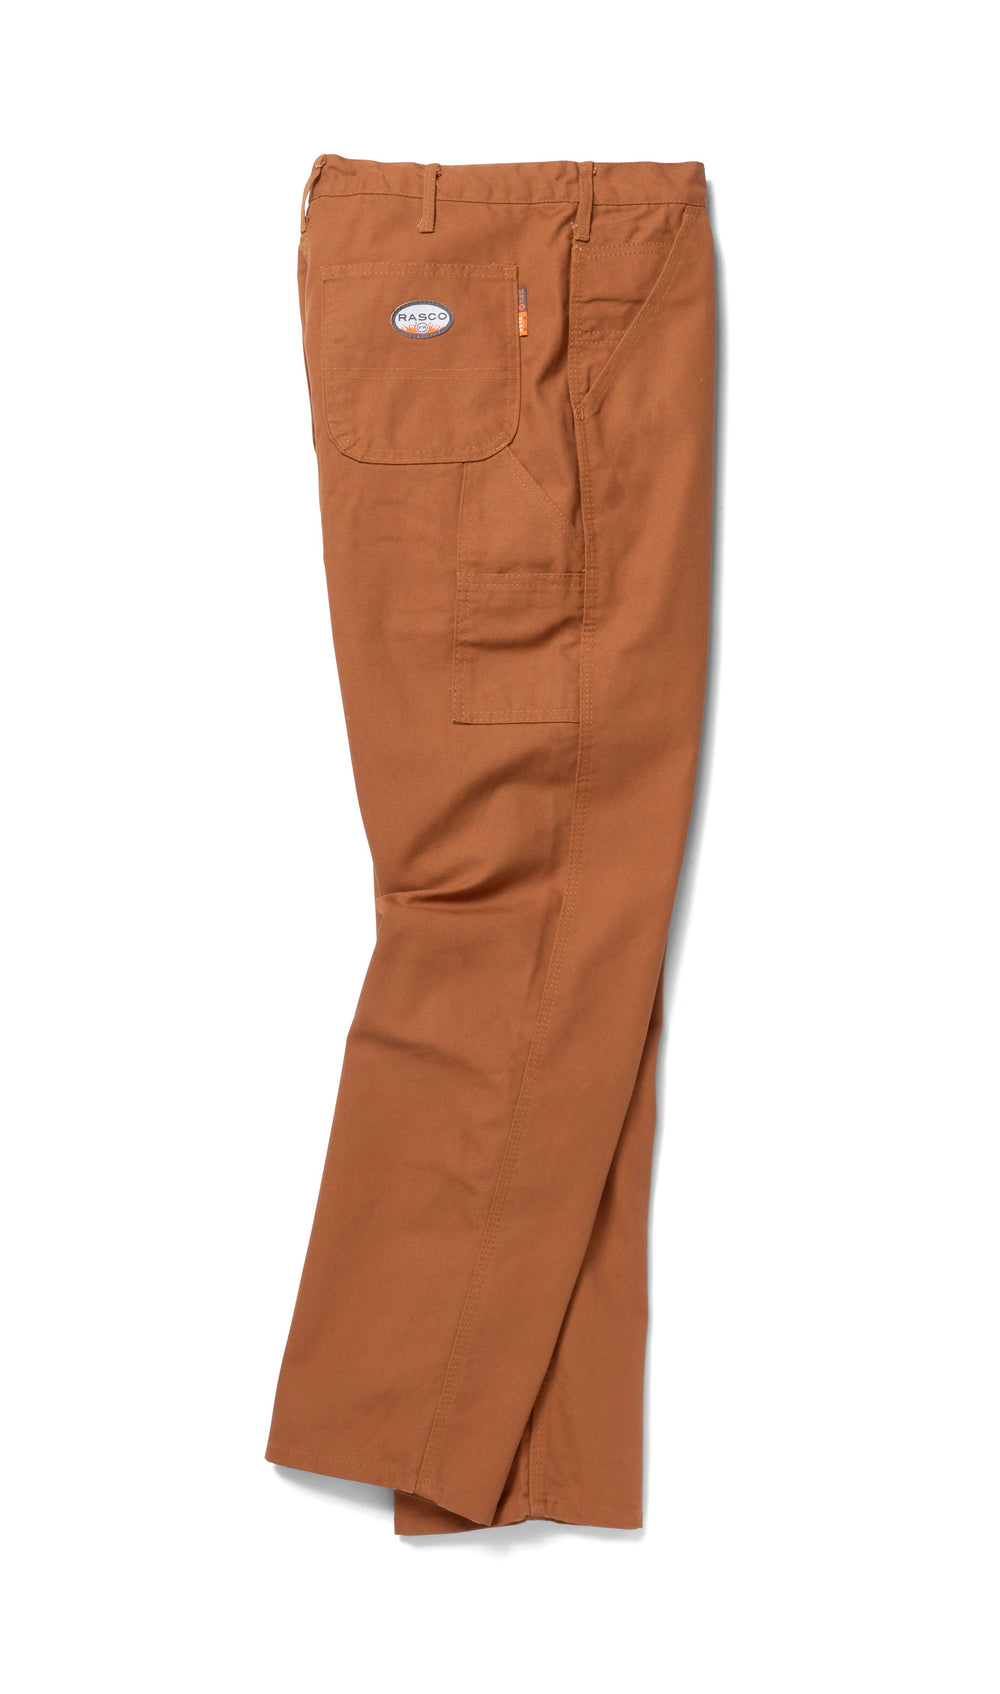 Rasco FR FR4507BN Brown Duck Carpenter Pants